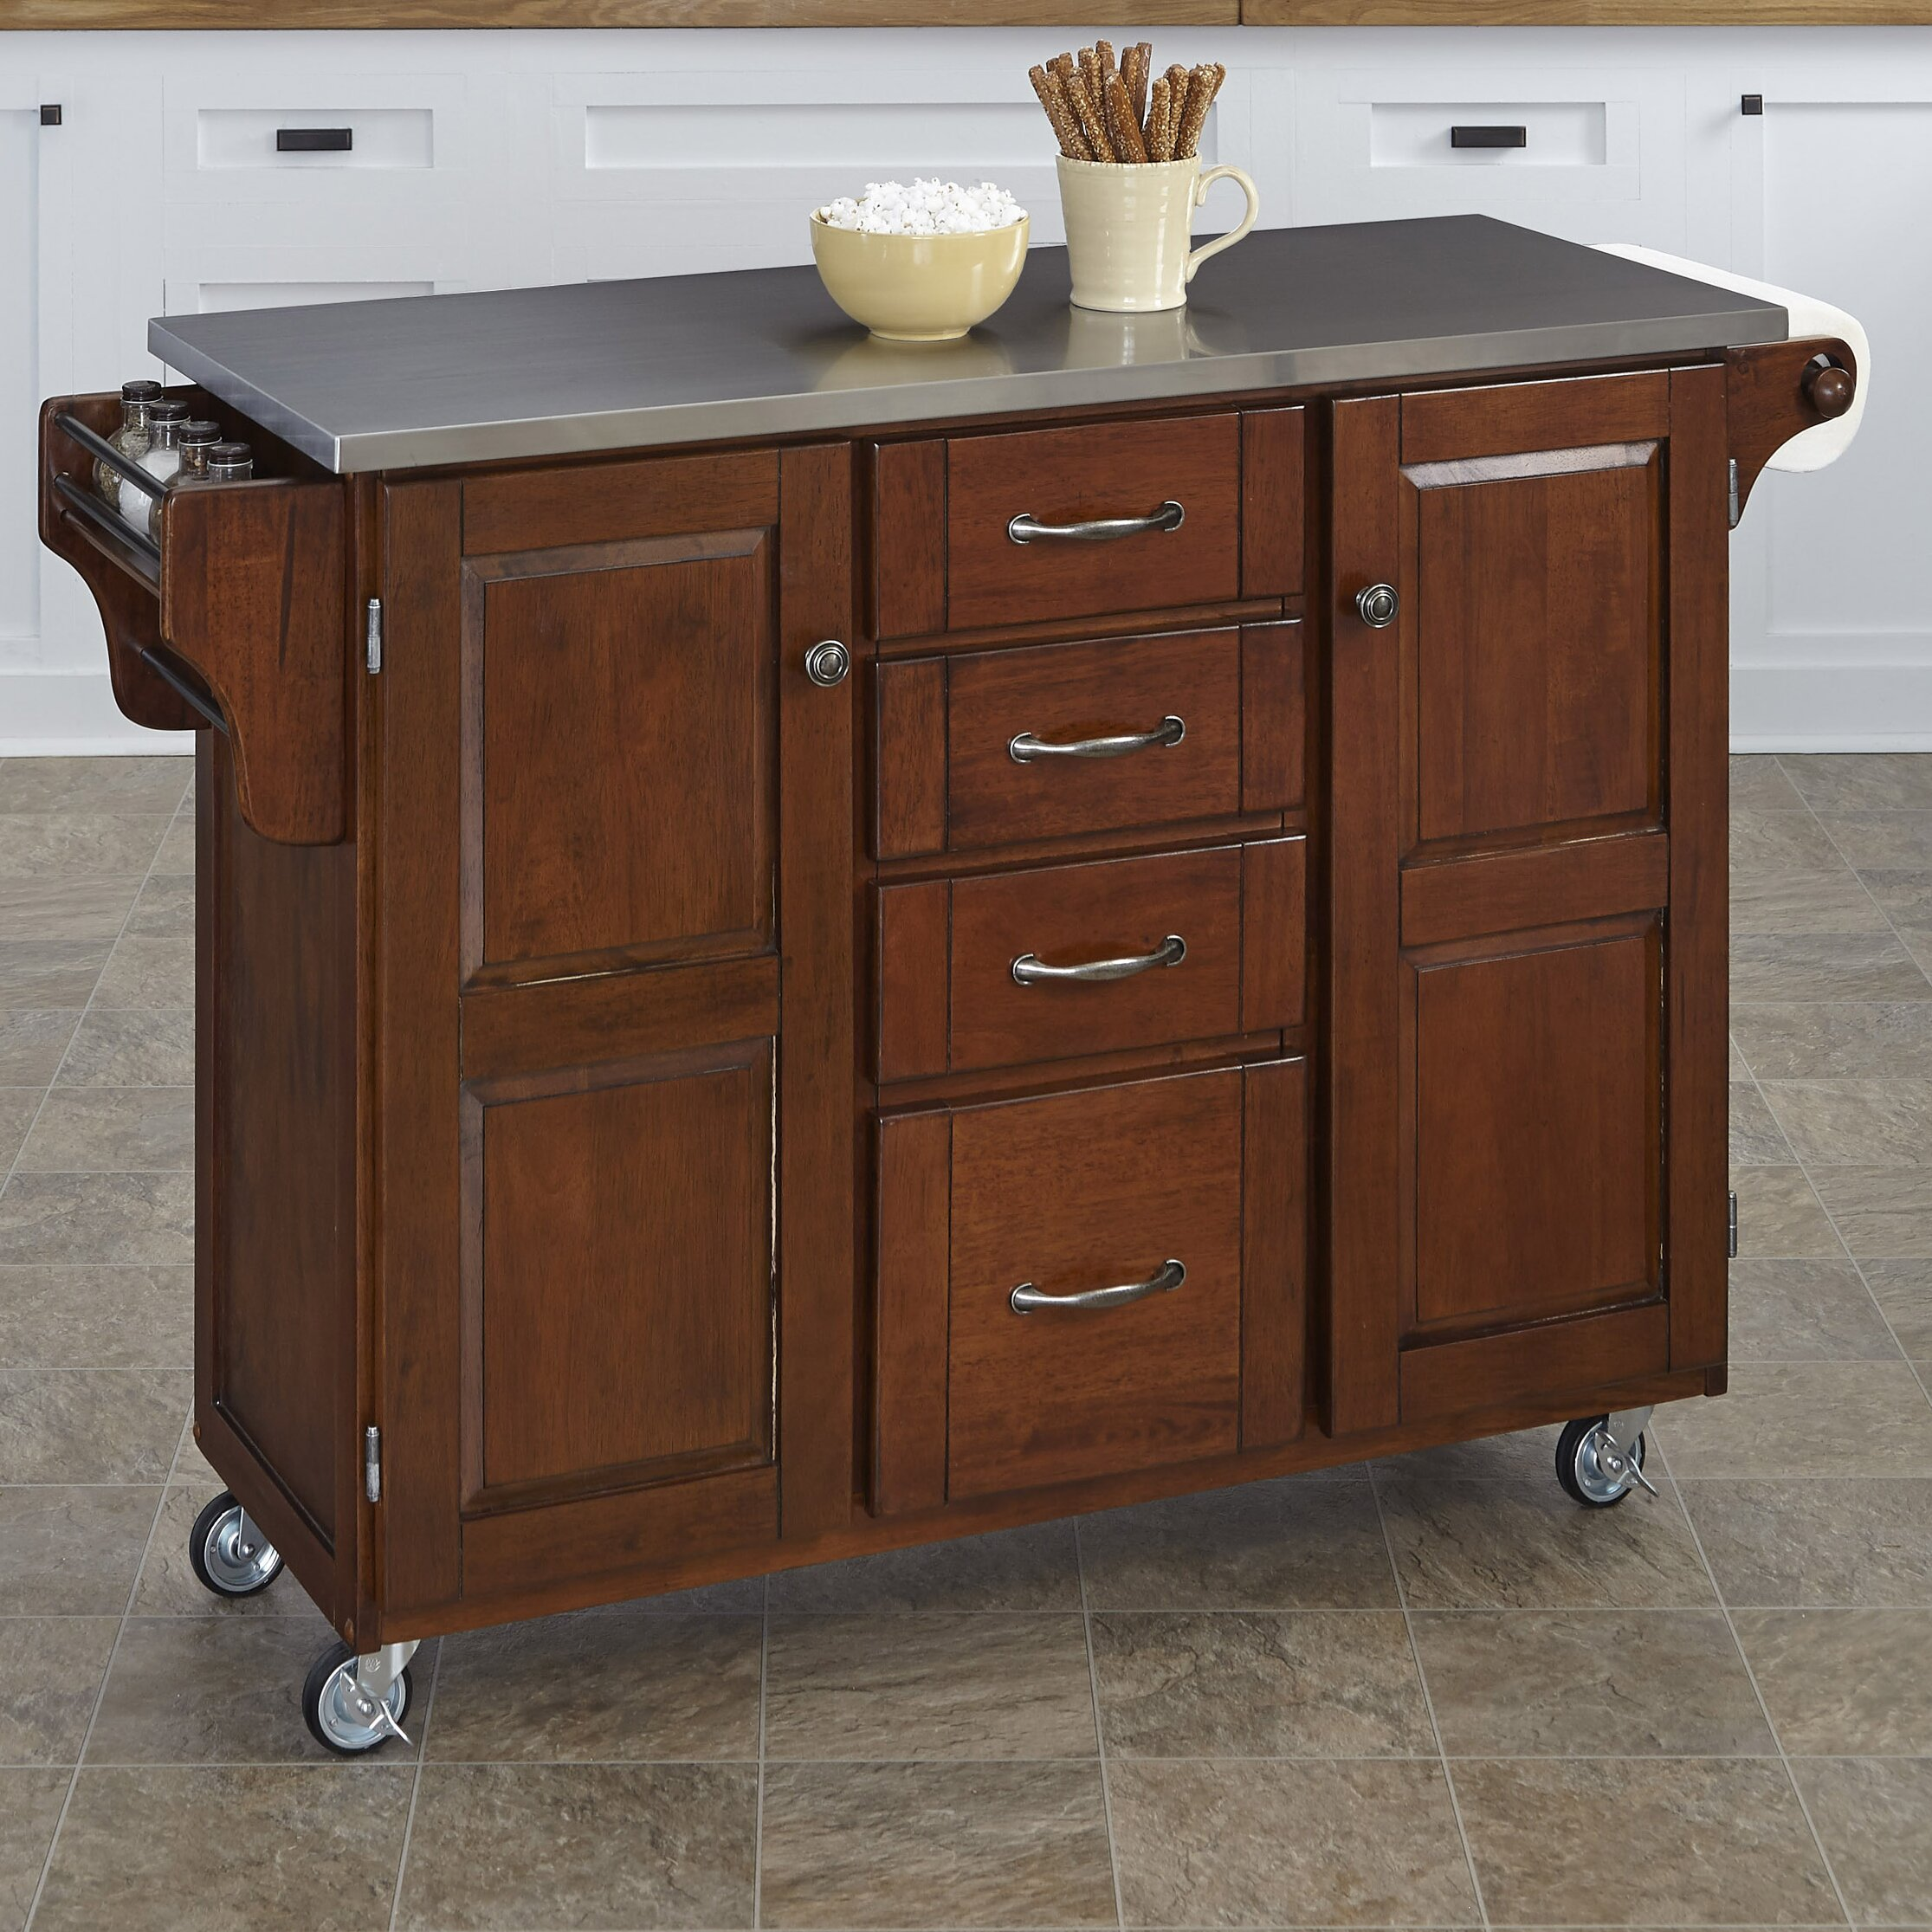 kitchen island stainless steel top august grove adelle a cart kitchen island with stainless 24786